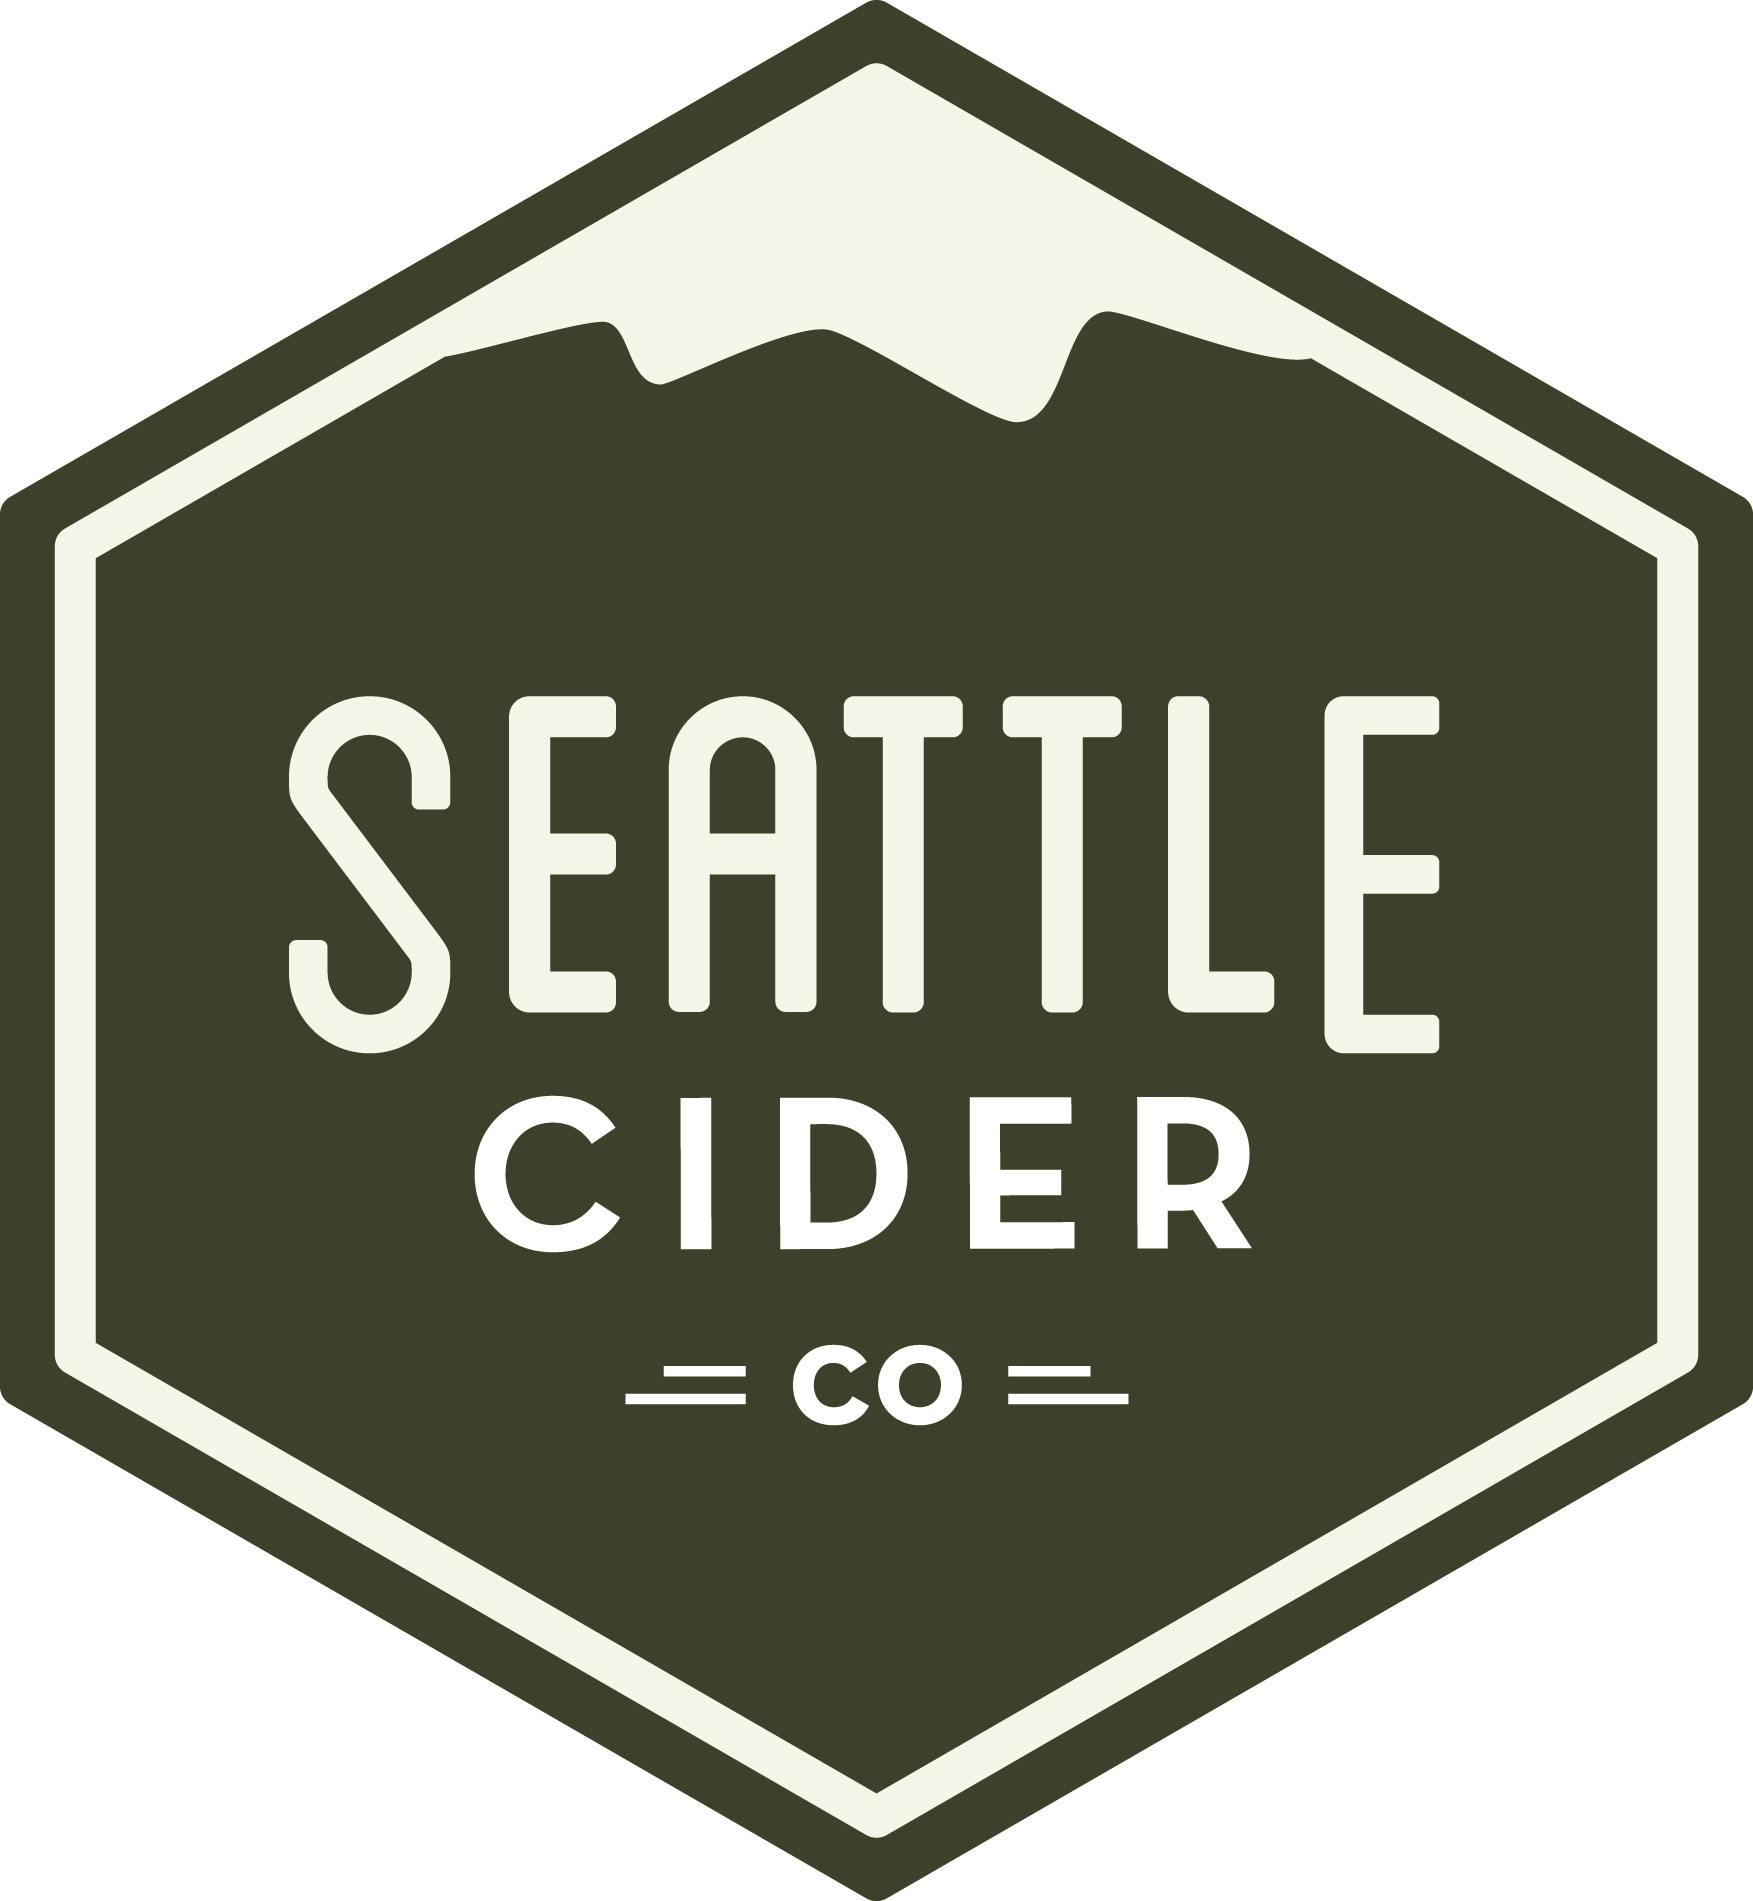 Seattle-Cider-Logo.jpg